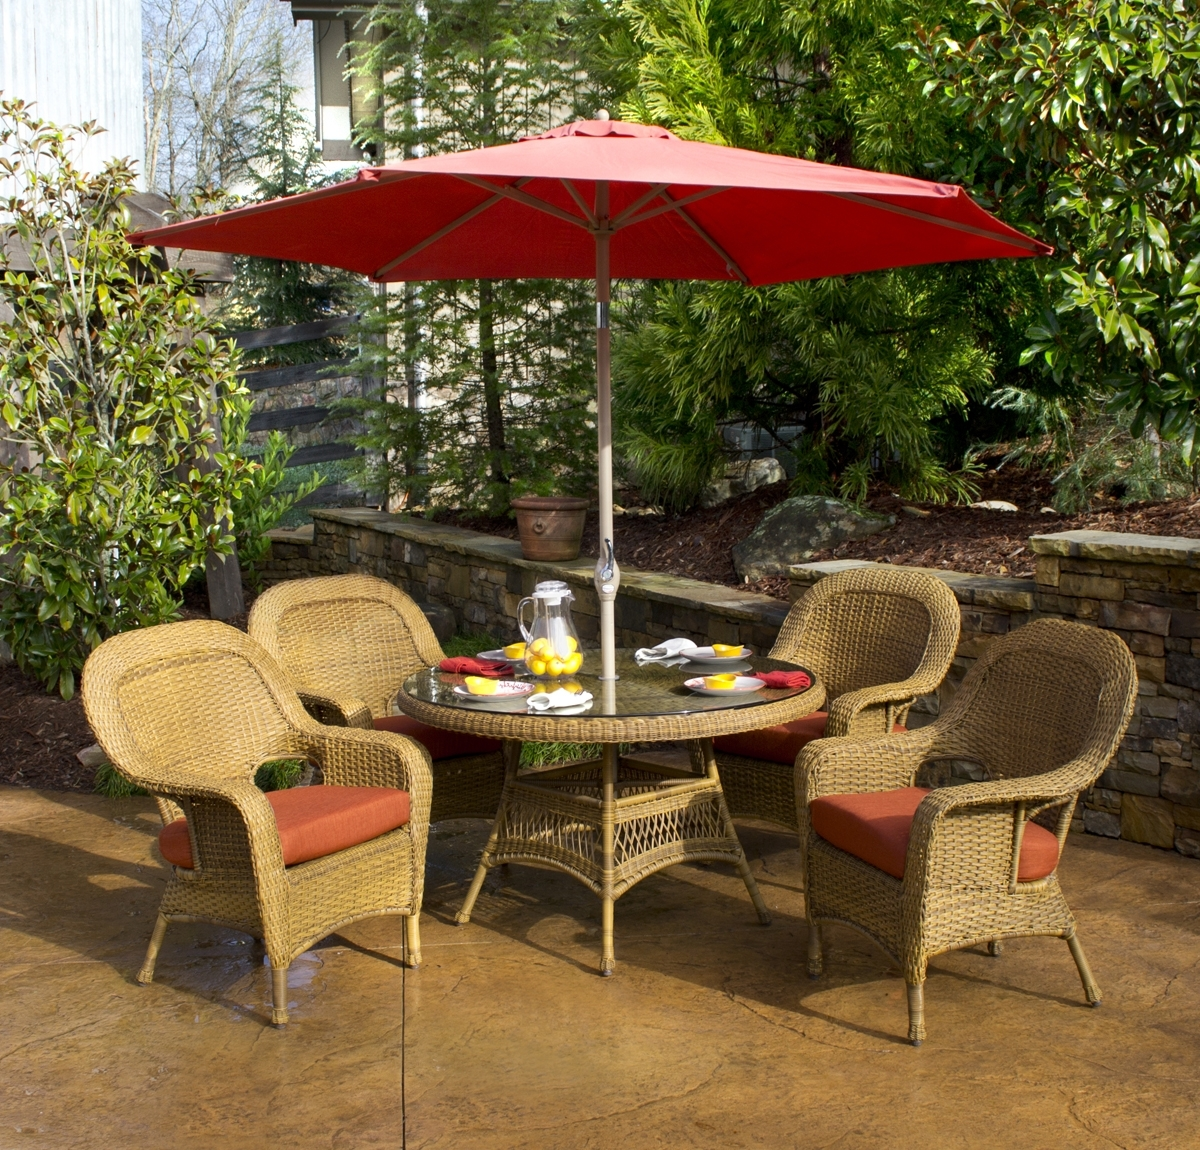 Classic Outdoor Dining Patio Ideas With White Painted Iron Red Within Fashionable Patio Dining Umbrellas (View 2 of 20)